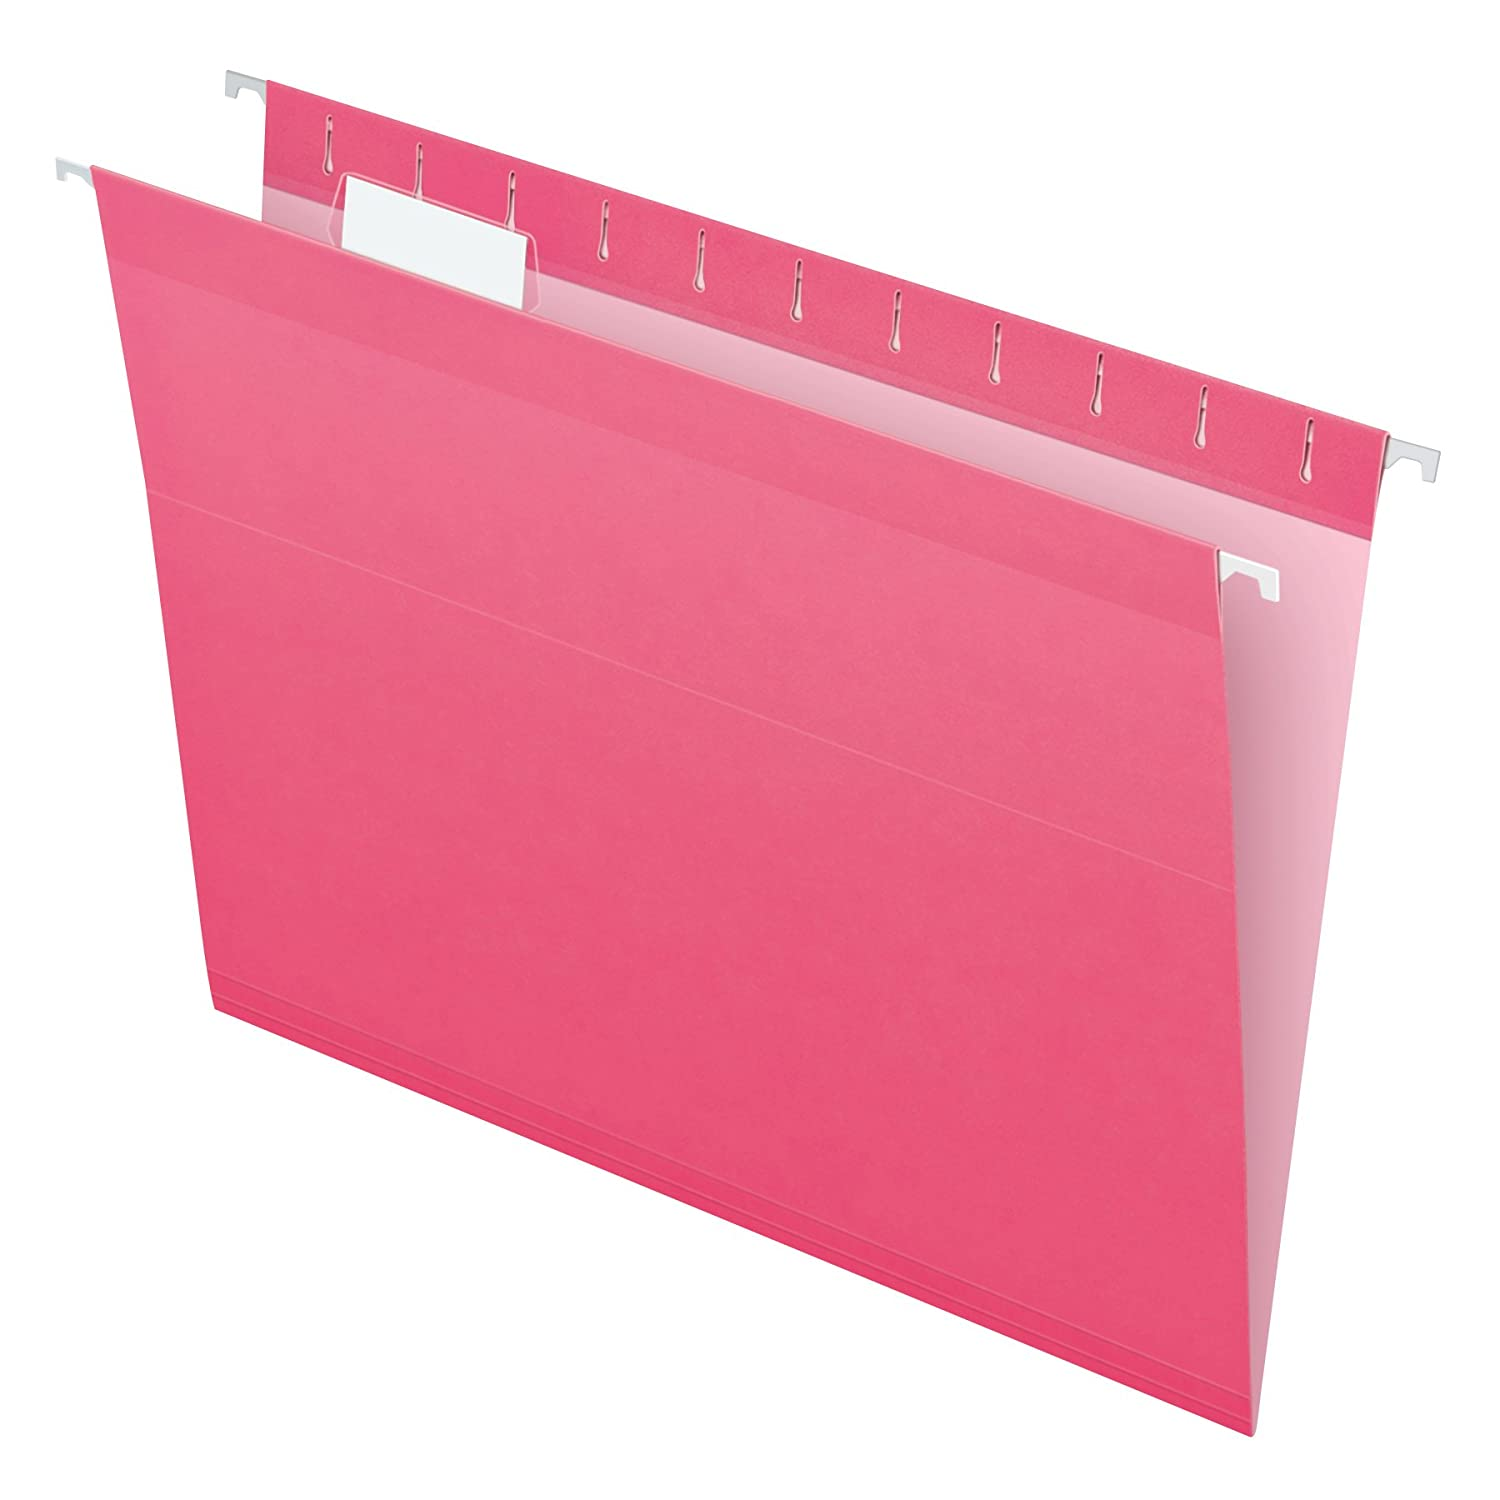 Amazon.com : Pendaflex Reinforced Hanging File Folders, Letter Size ...